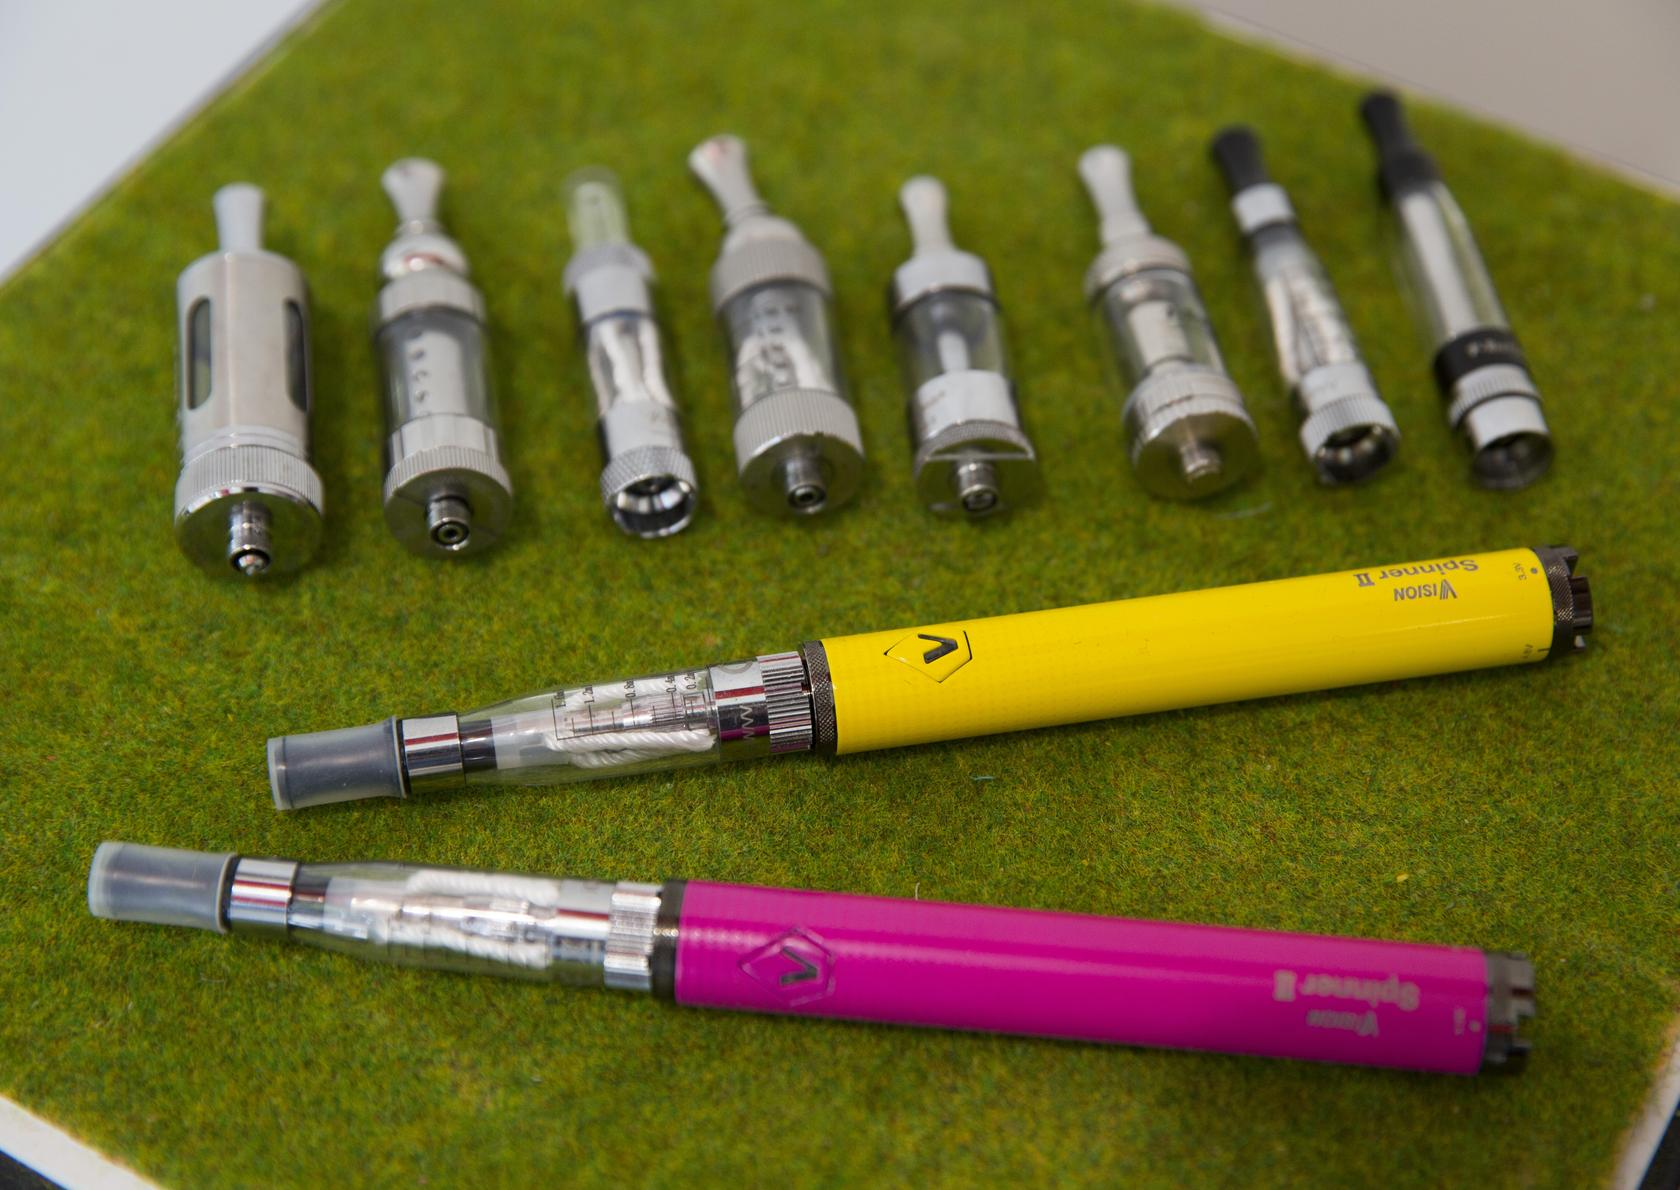 E-cigarette policy should consider environmental effects, expert